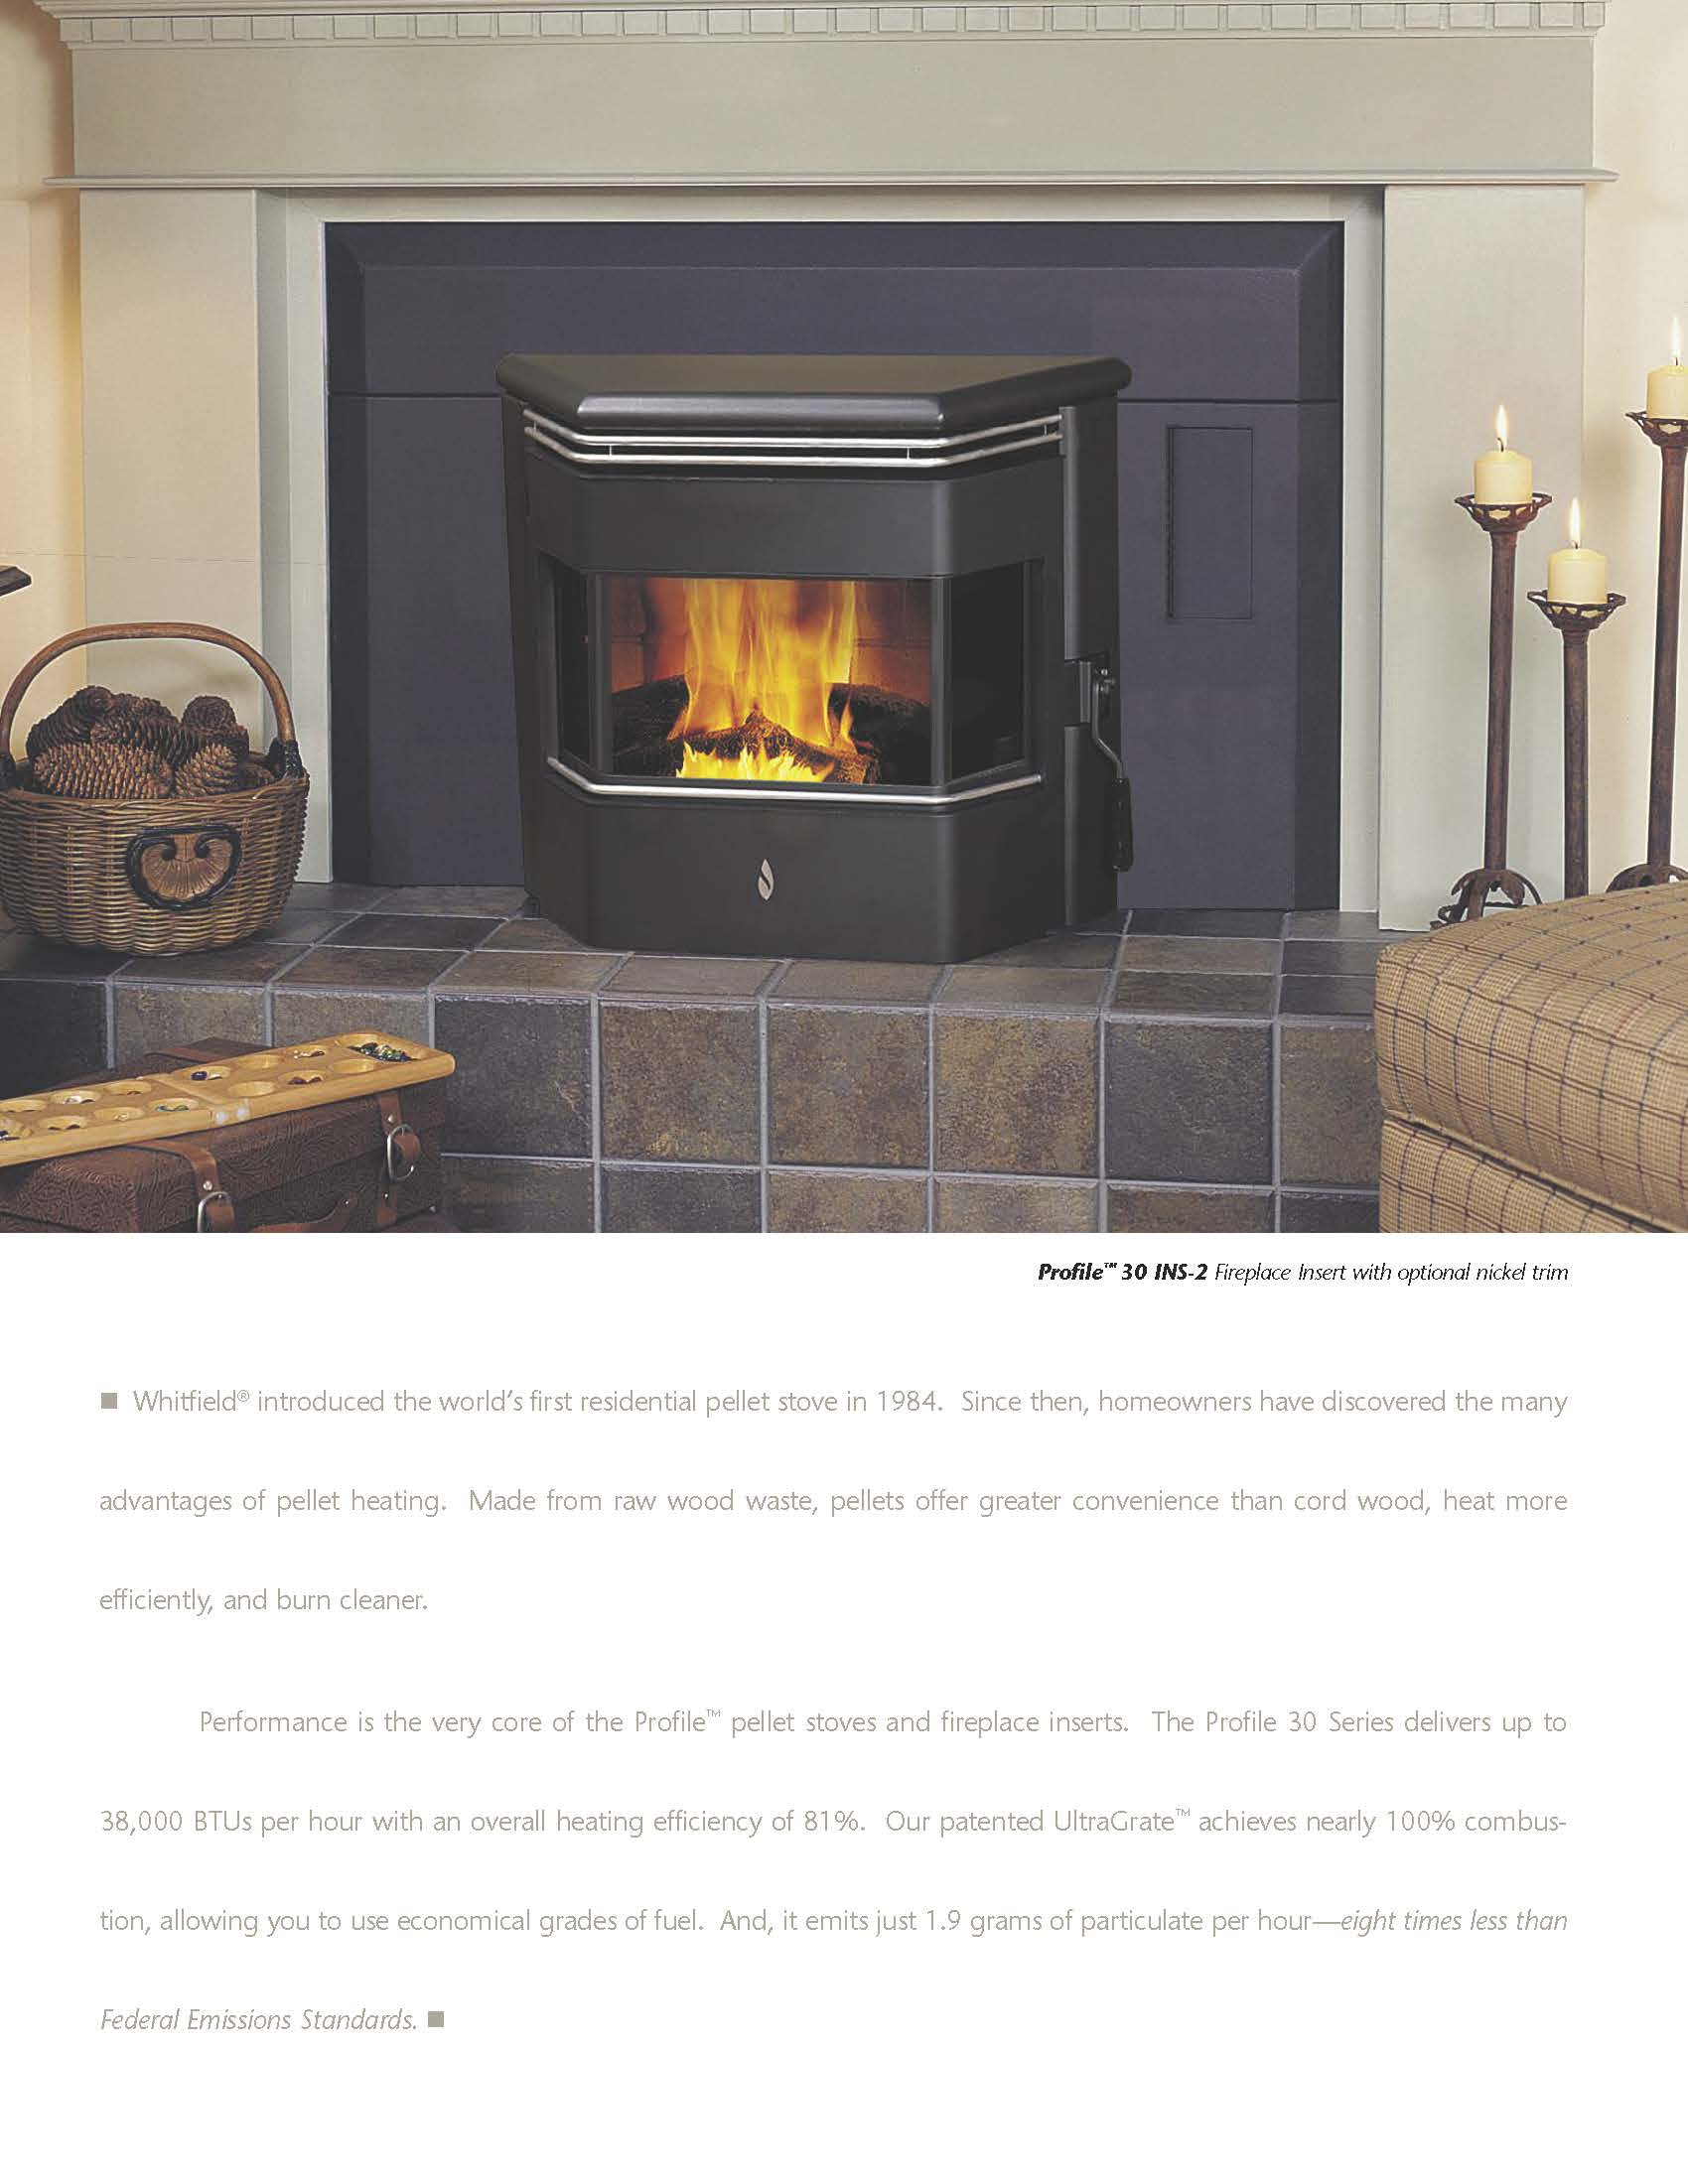 Strange Whitfield Profile 20 30 Pellet Stove Brochure Freestanding Home Interior And Landscaping Ologienasavecom